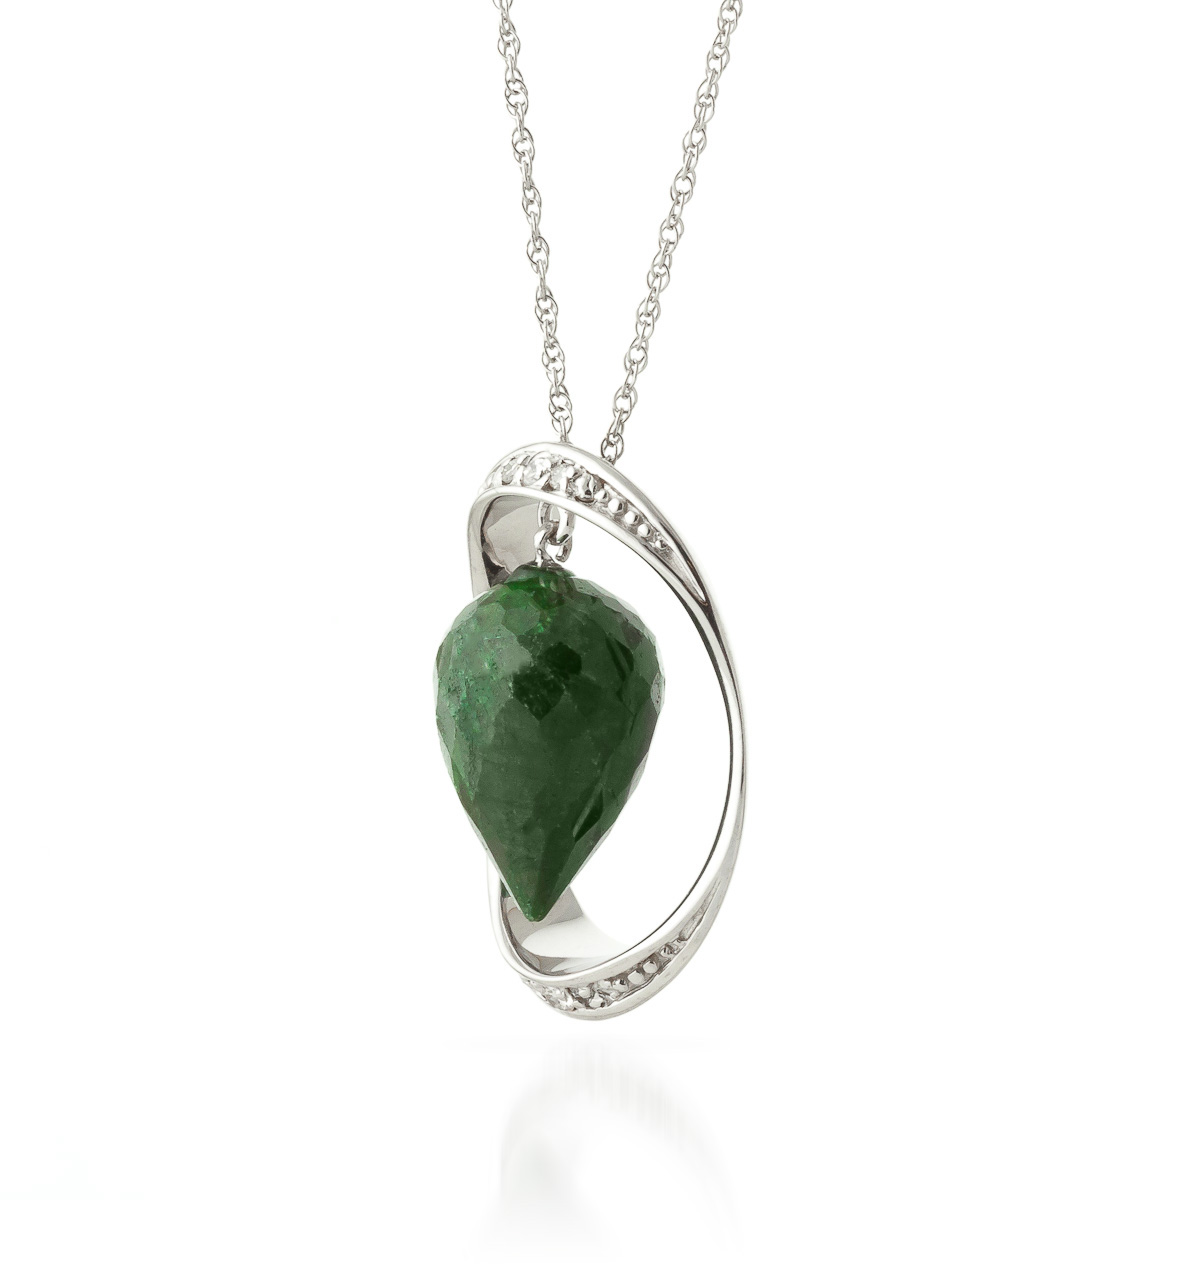 Emerald & Diamond Drop Pendant Necklace in 9ct White Gold